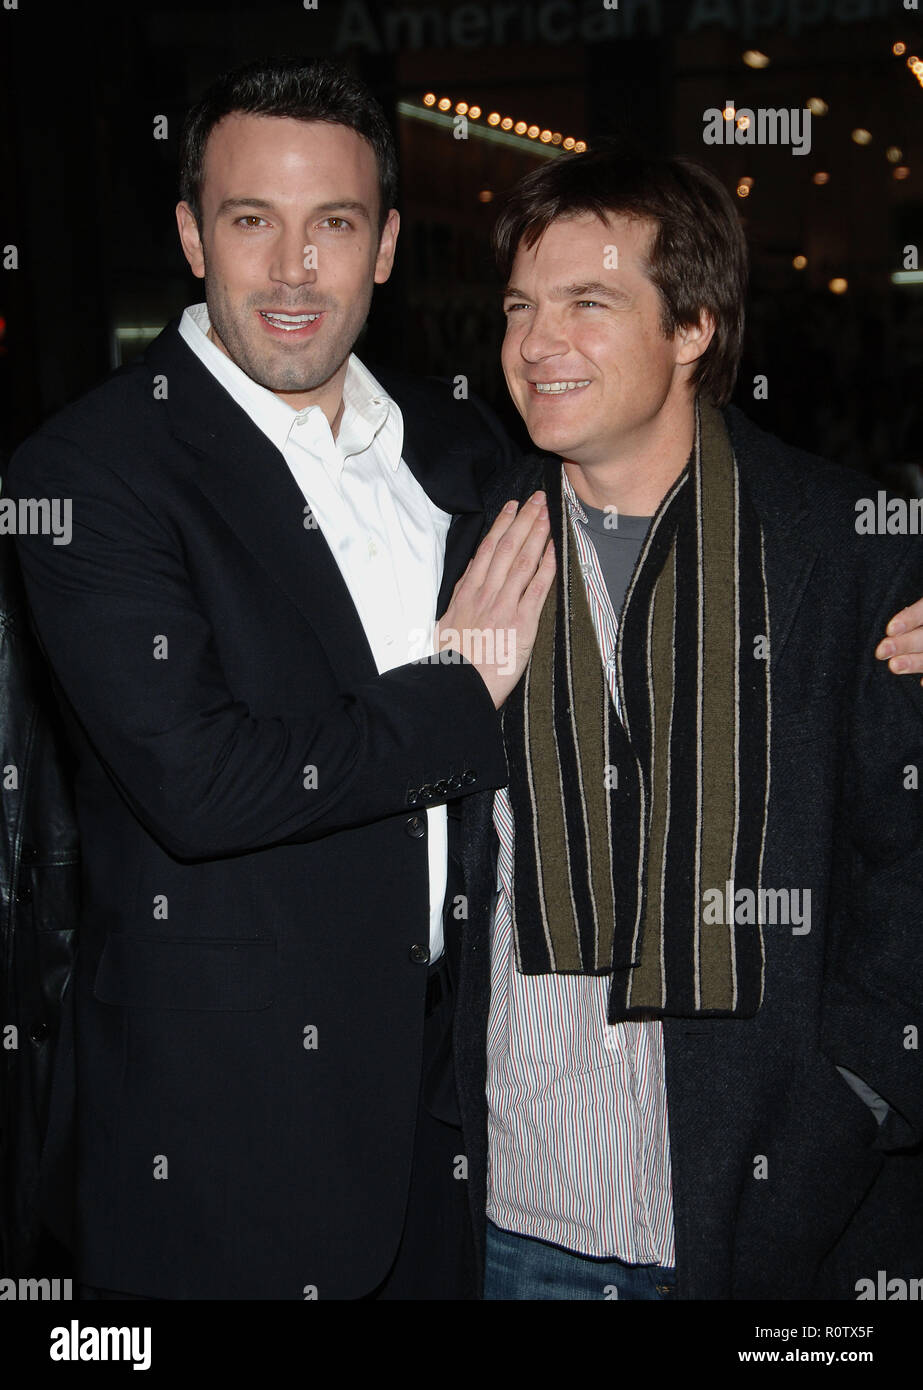 Ben Affleck and Jason Bateman arriving at the Smokin' Aces at the Chinese Theatre In Los Angeles. January 18, 2007.  smile eye contact 3/4          -  - Stock Image